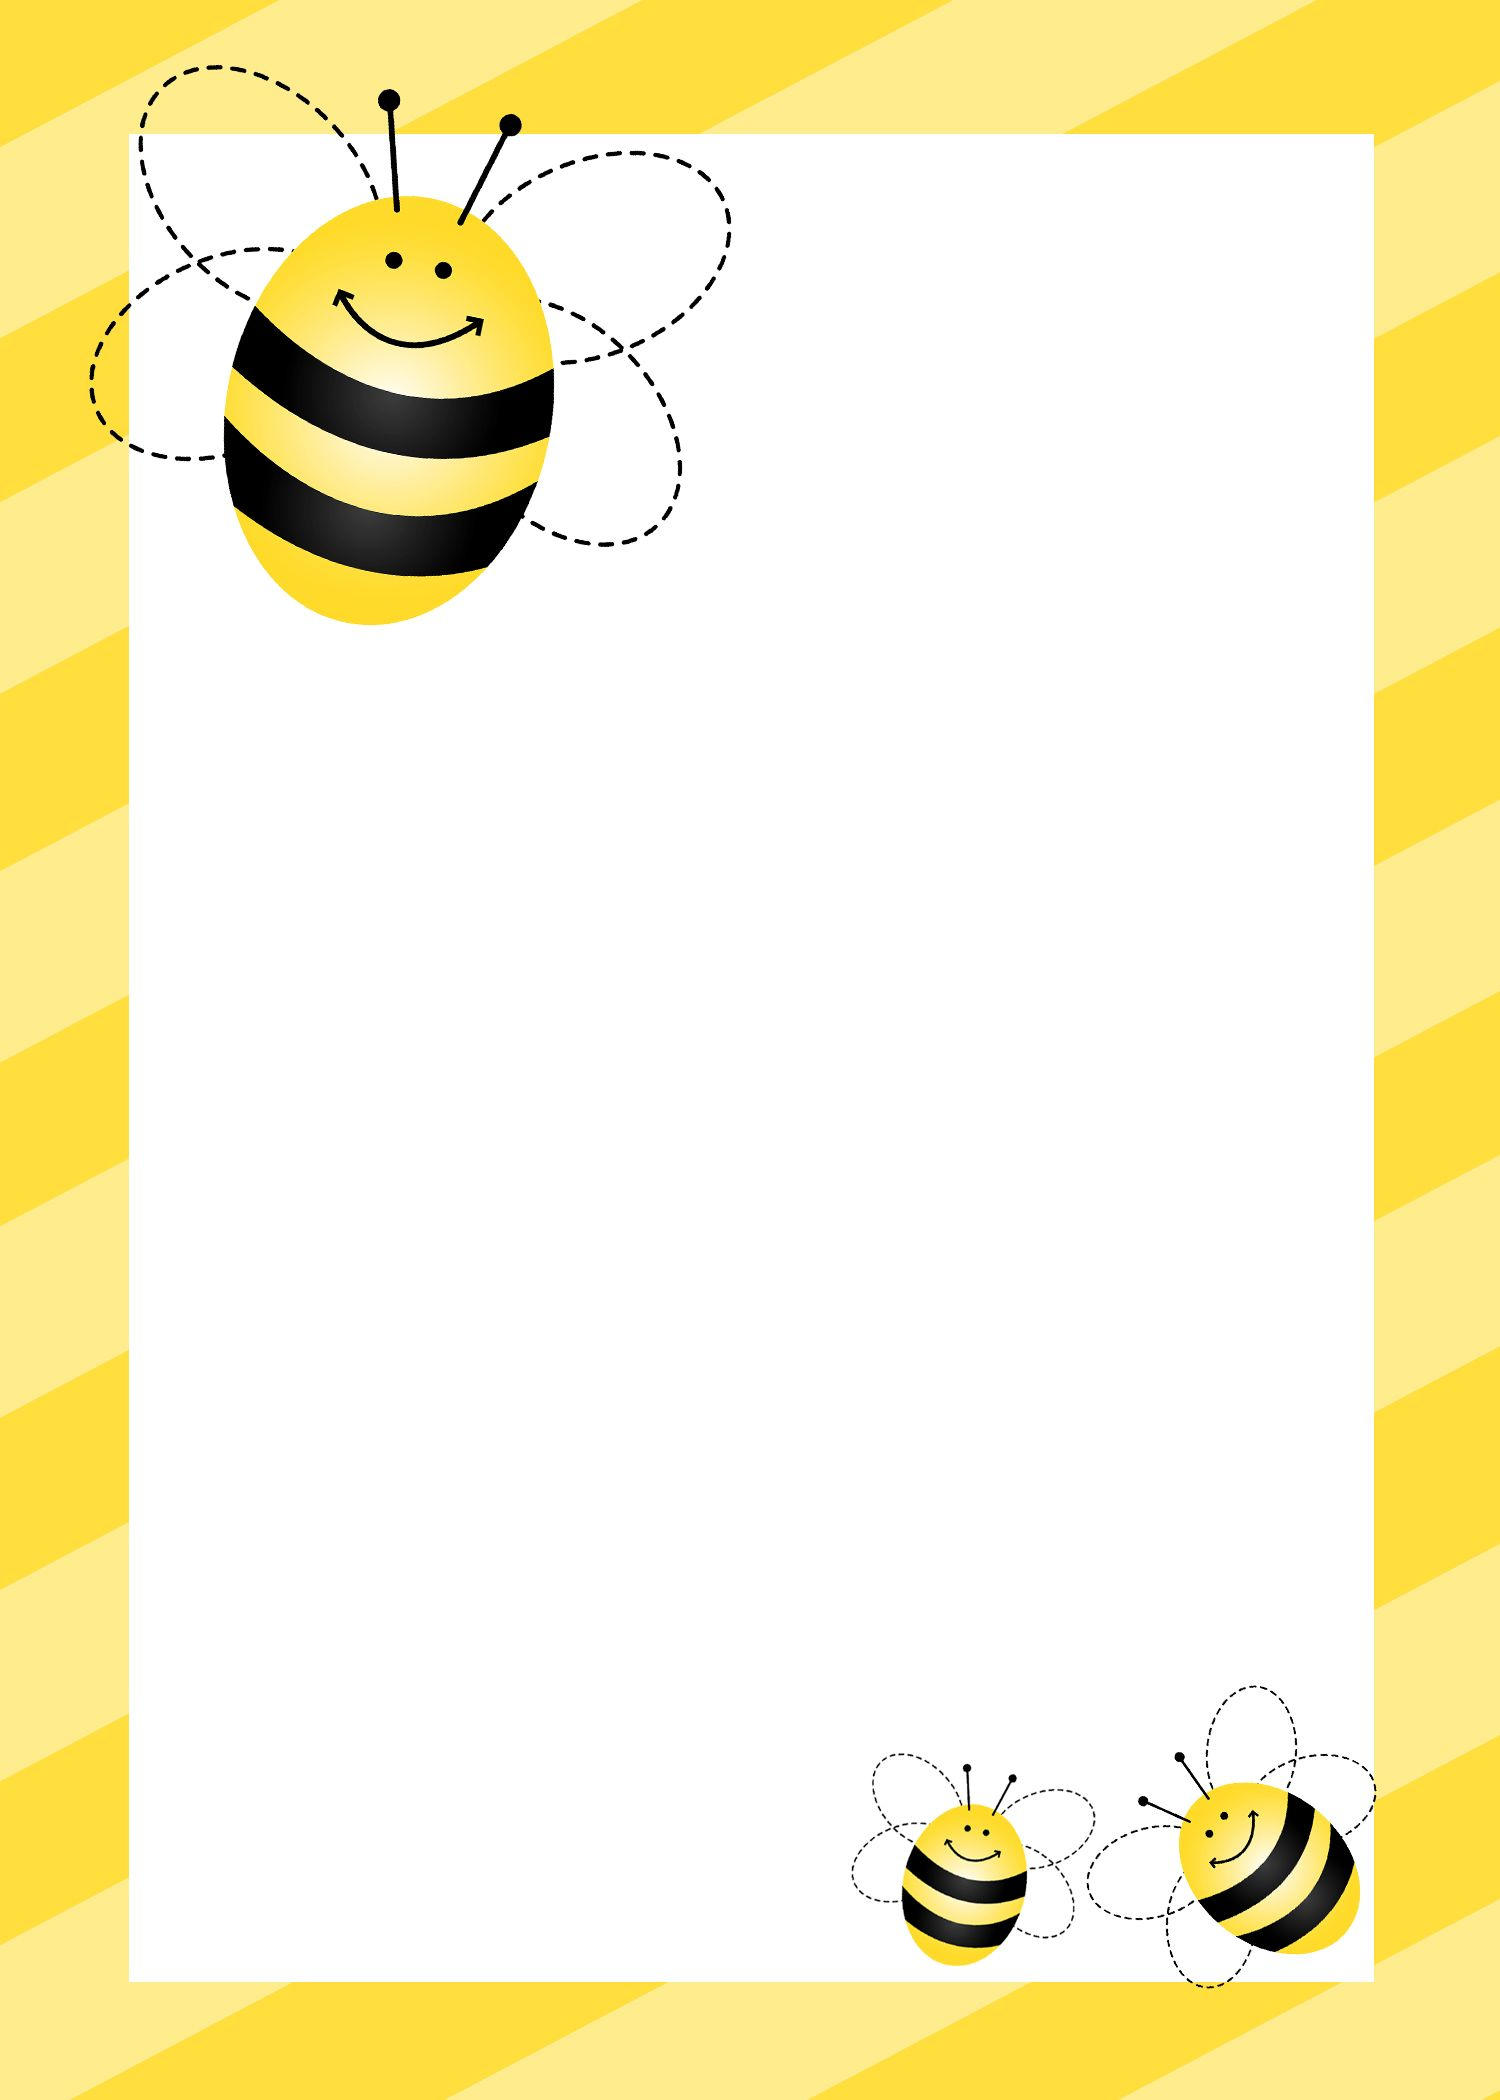 Bumblebee themed birthday party. Bee clipart frame